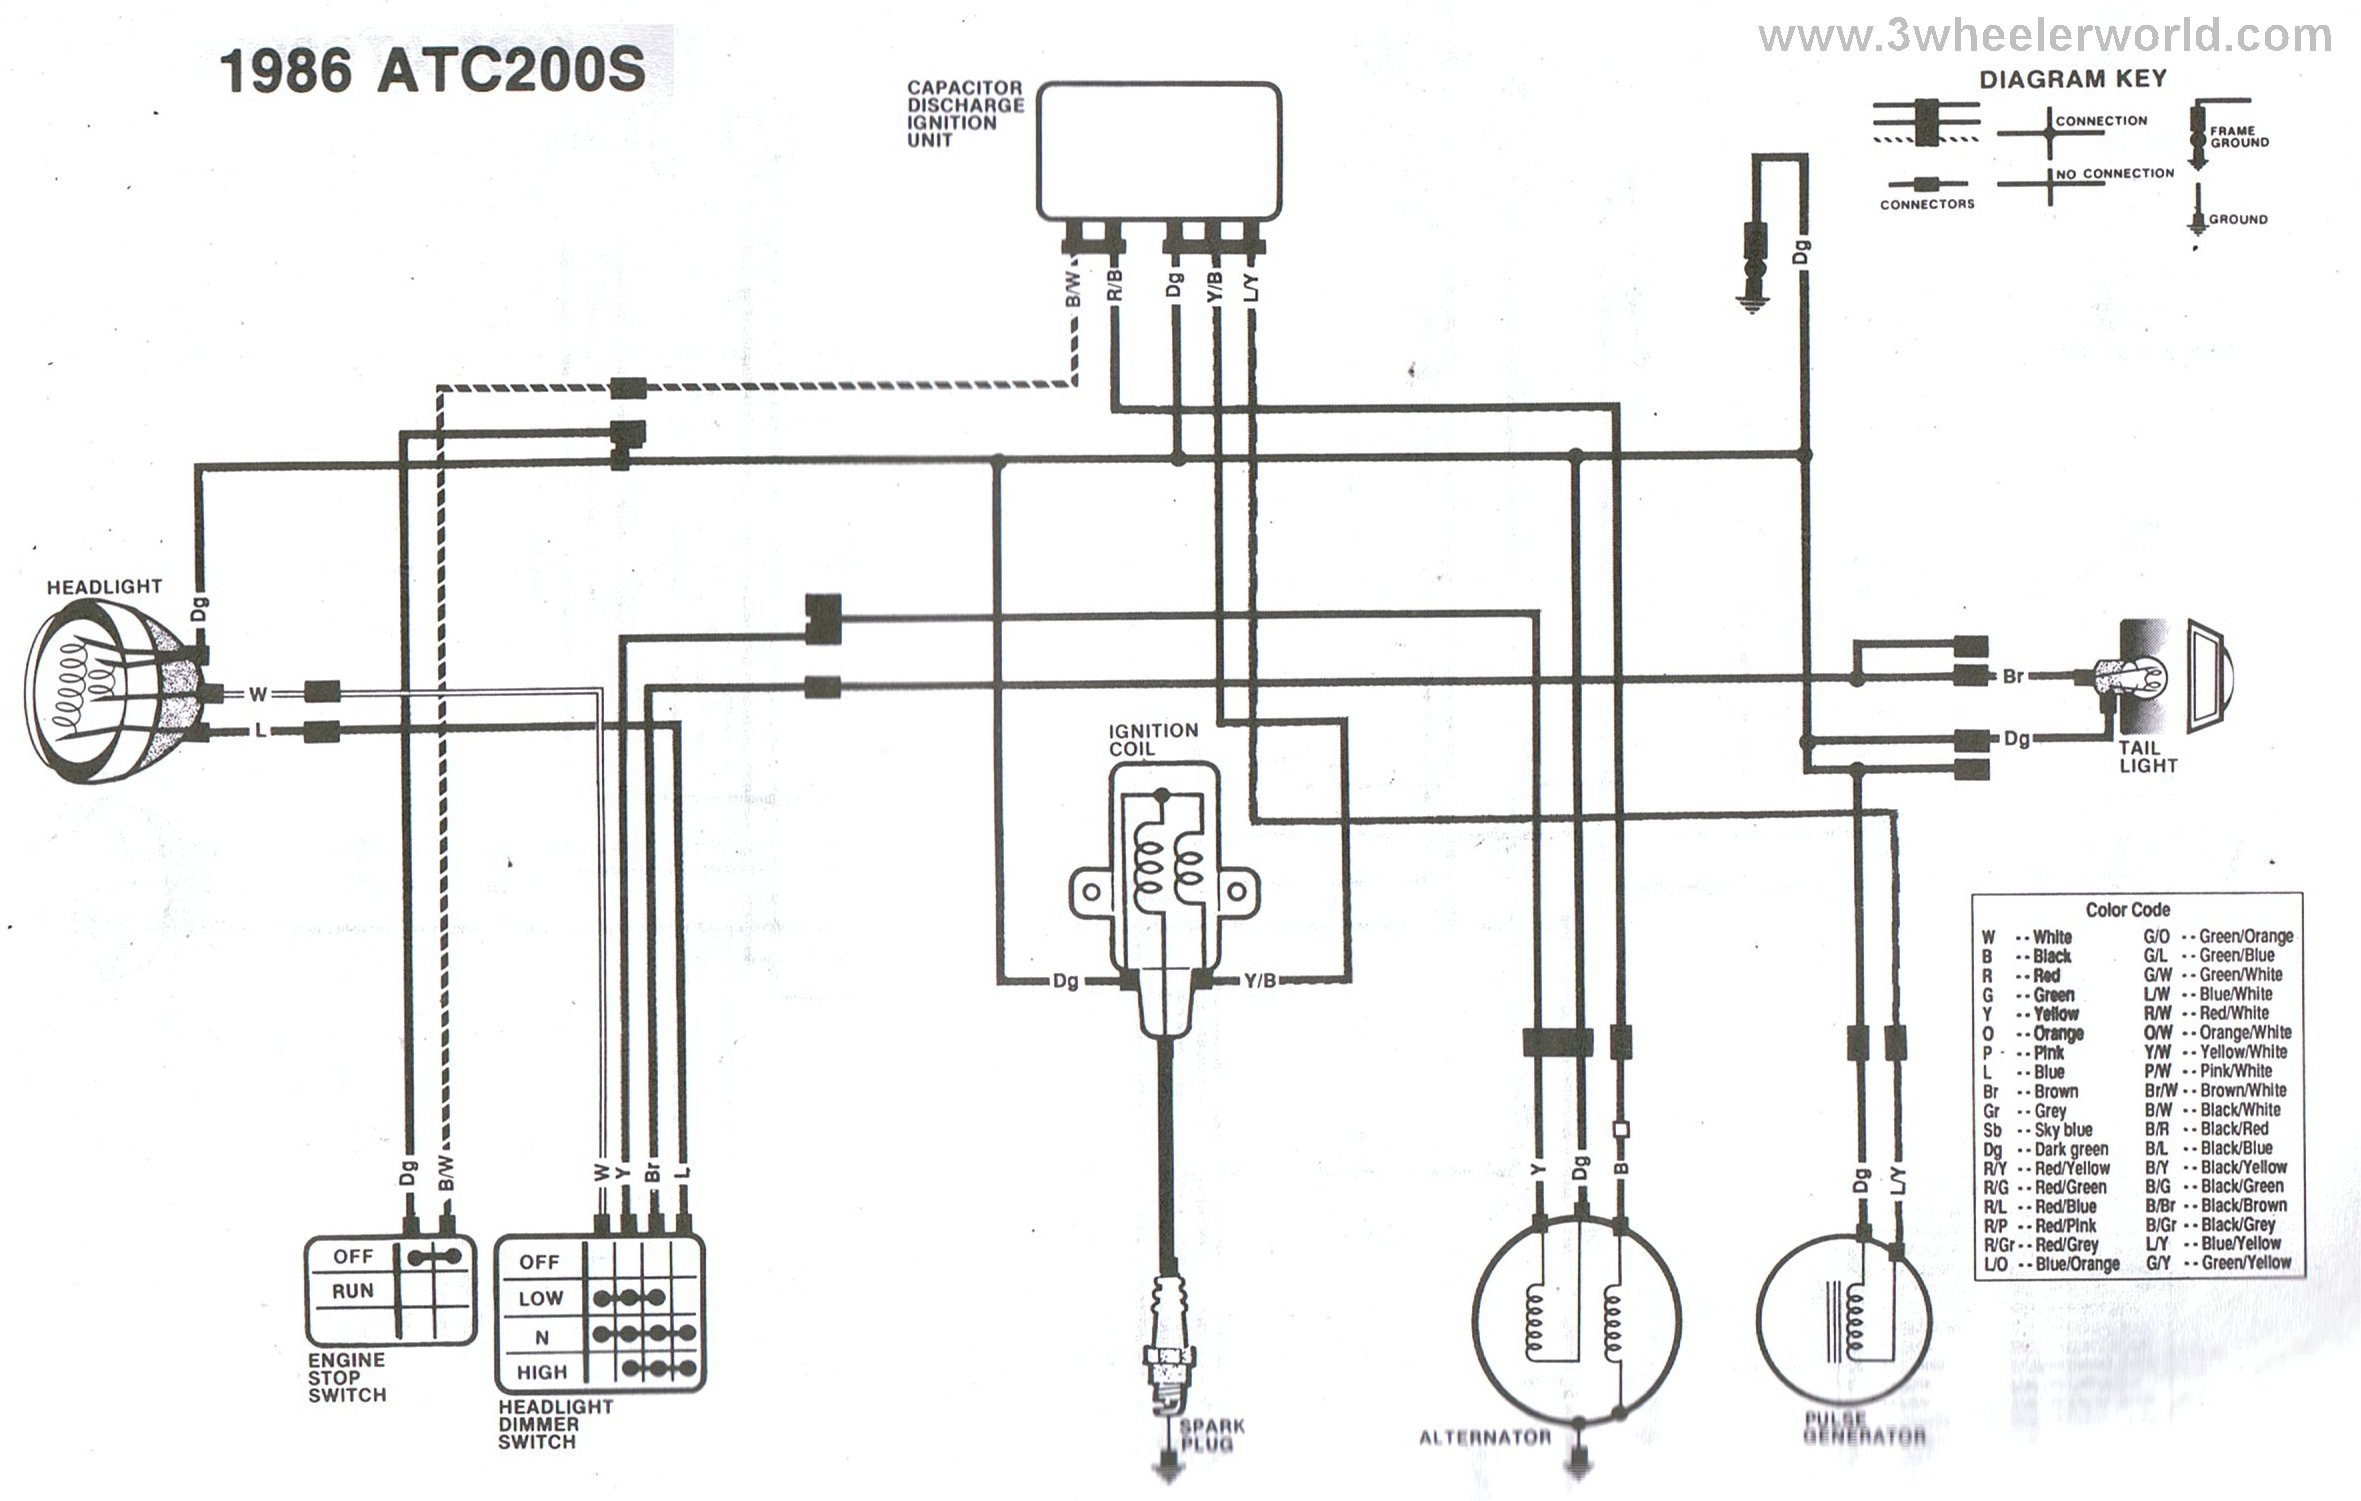 1986 Honda Atv Wiring Diagram Electrical Schematics 125s 86 Trx 125 Data Diagrams U2022 Schematic